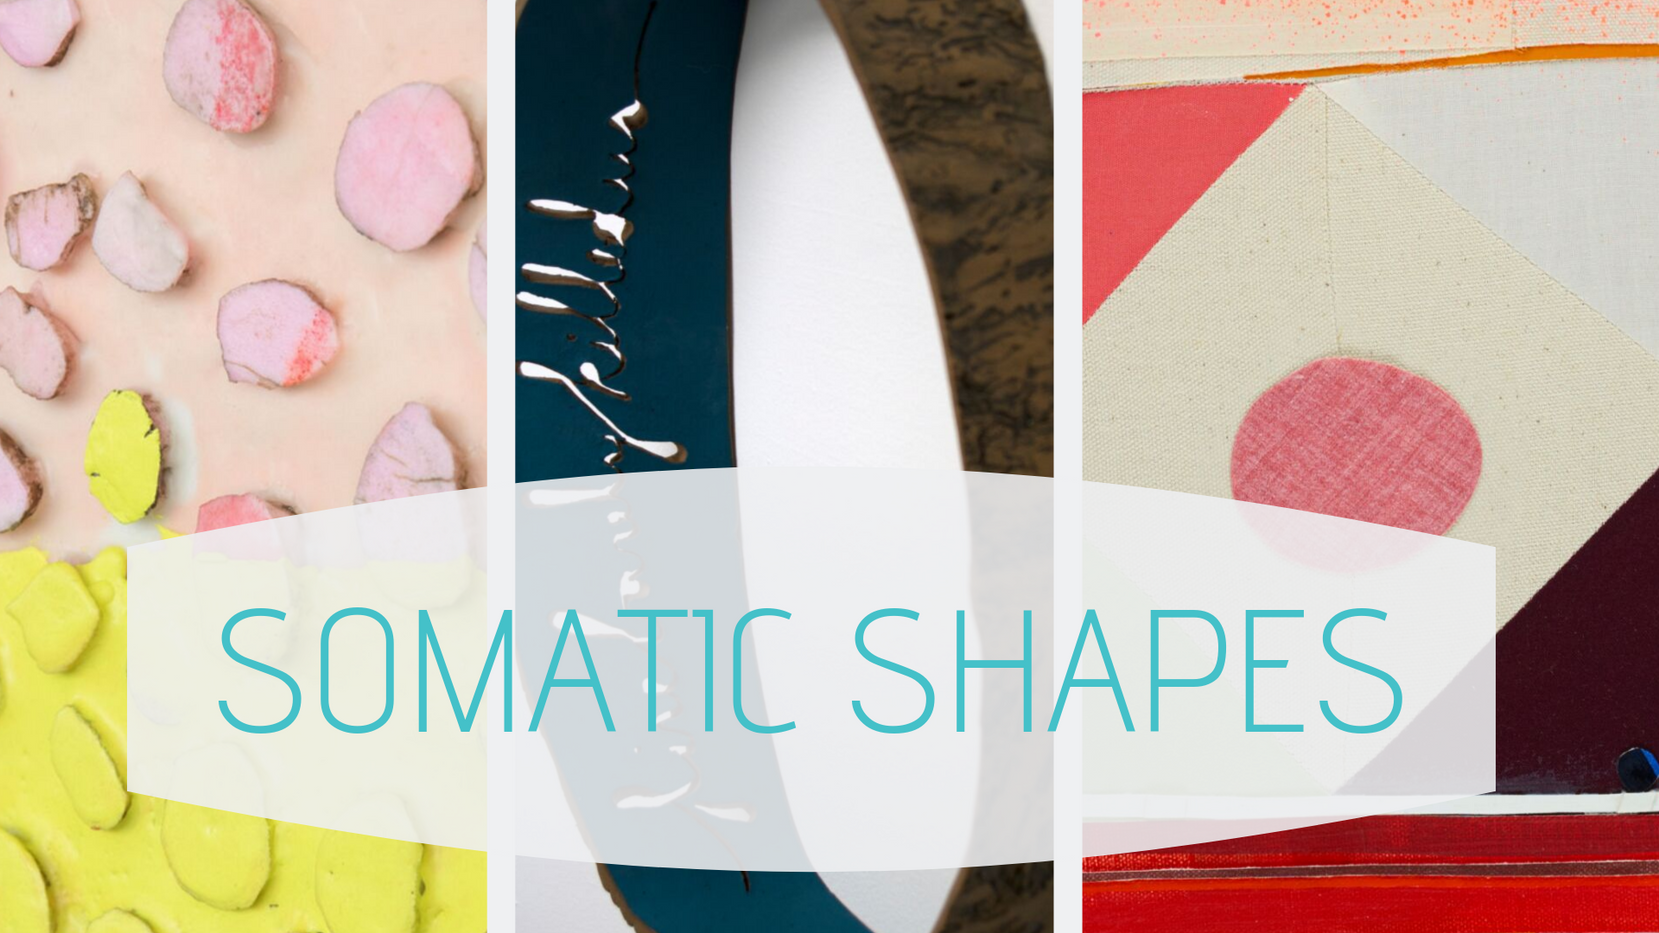 Somatic Shapes